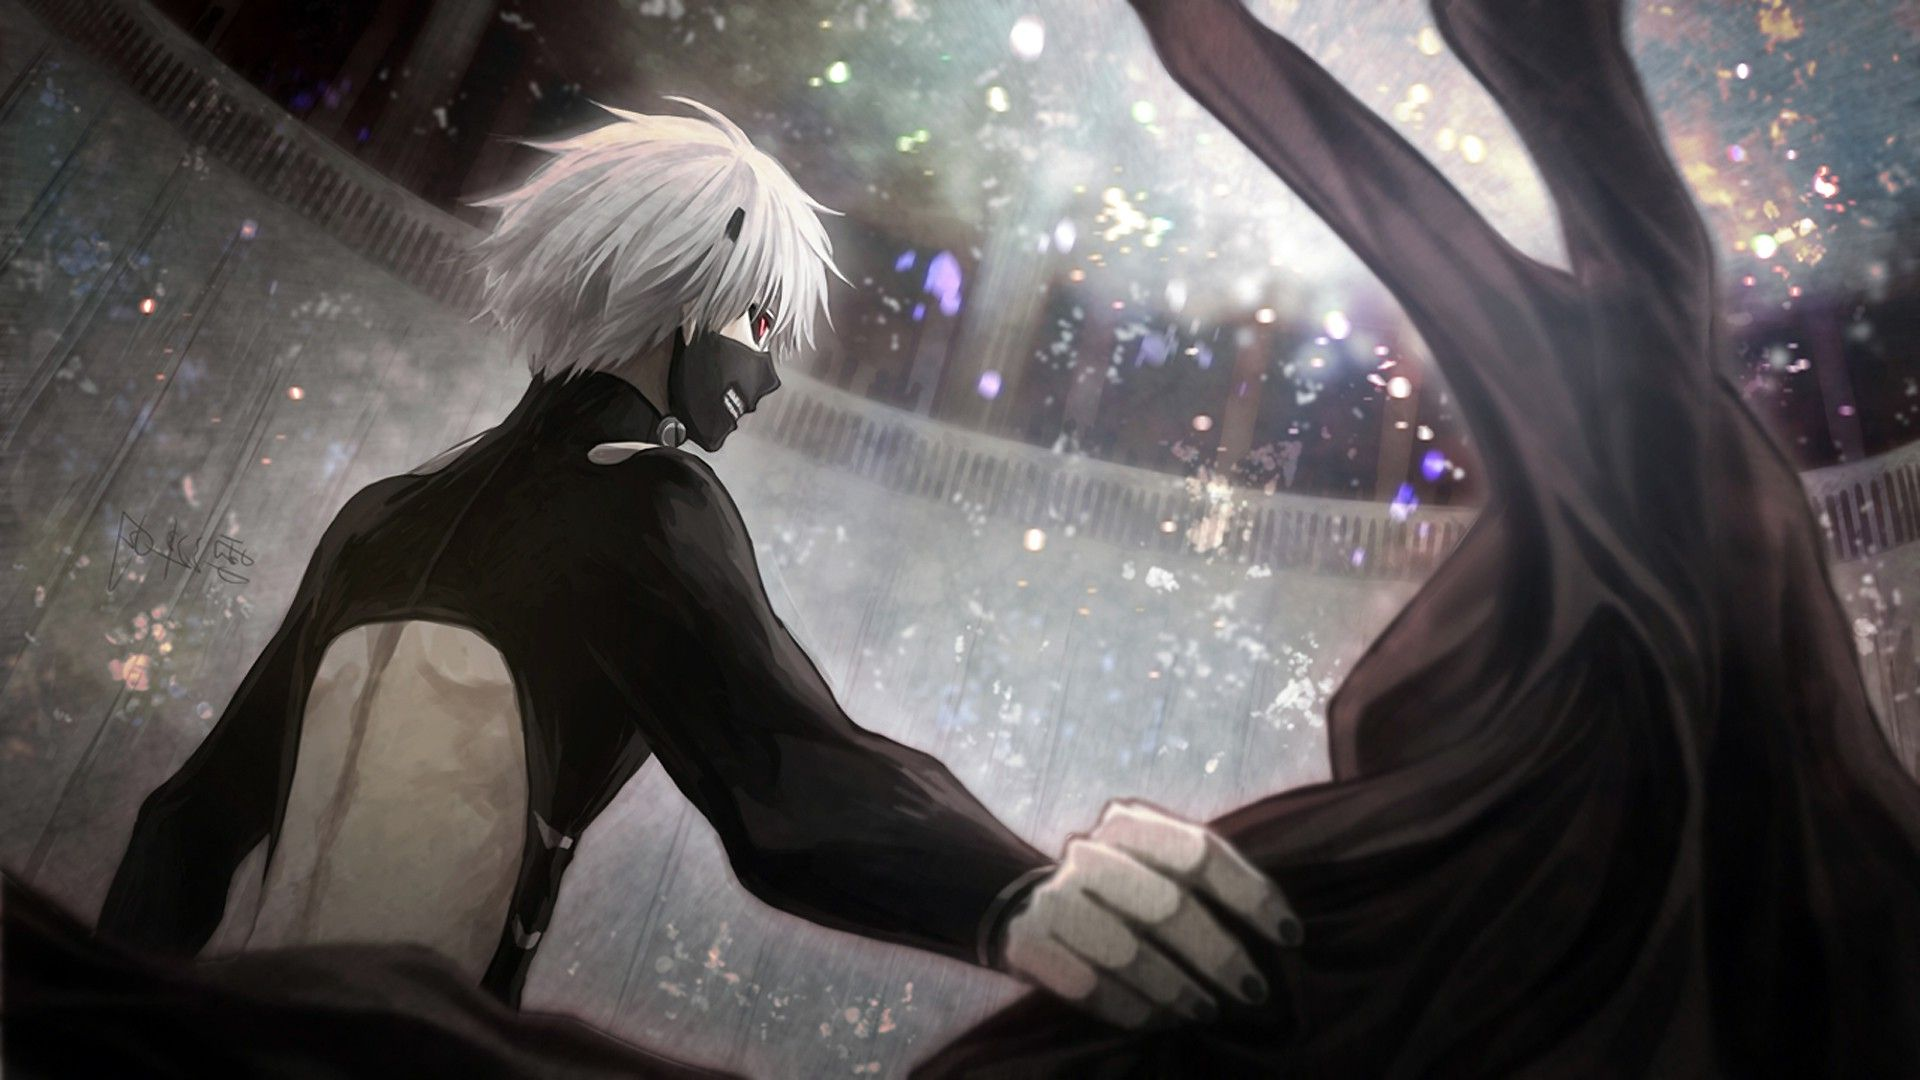 Tokyo Ghoul, Kaneki Ken, Anime, Anime Boys, Red Eyes, Grey Hair